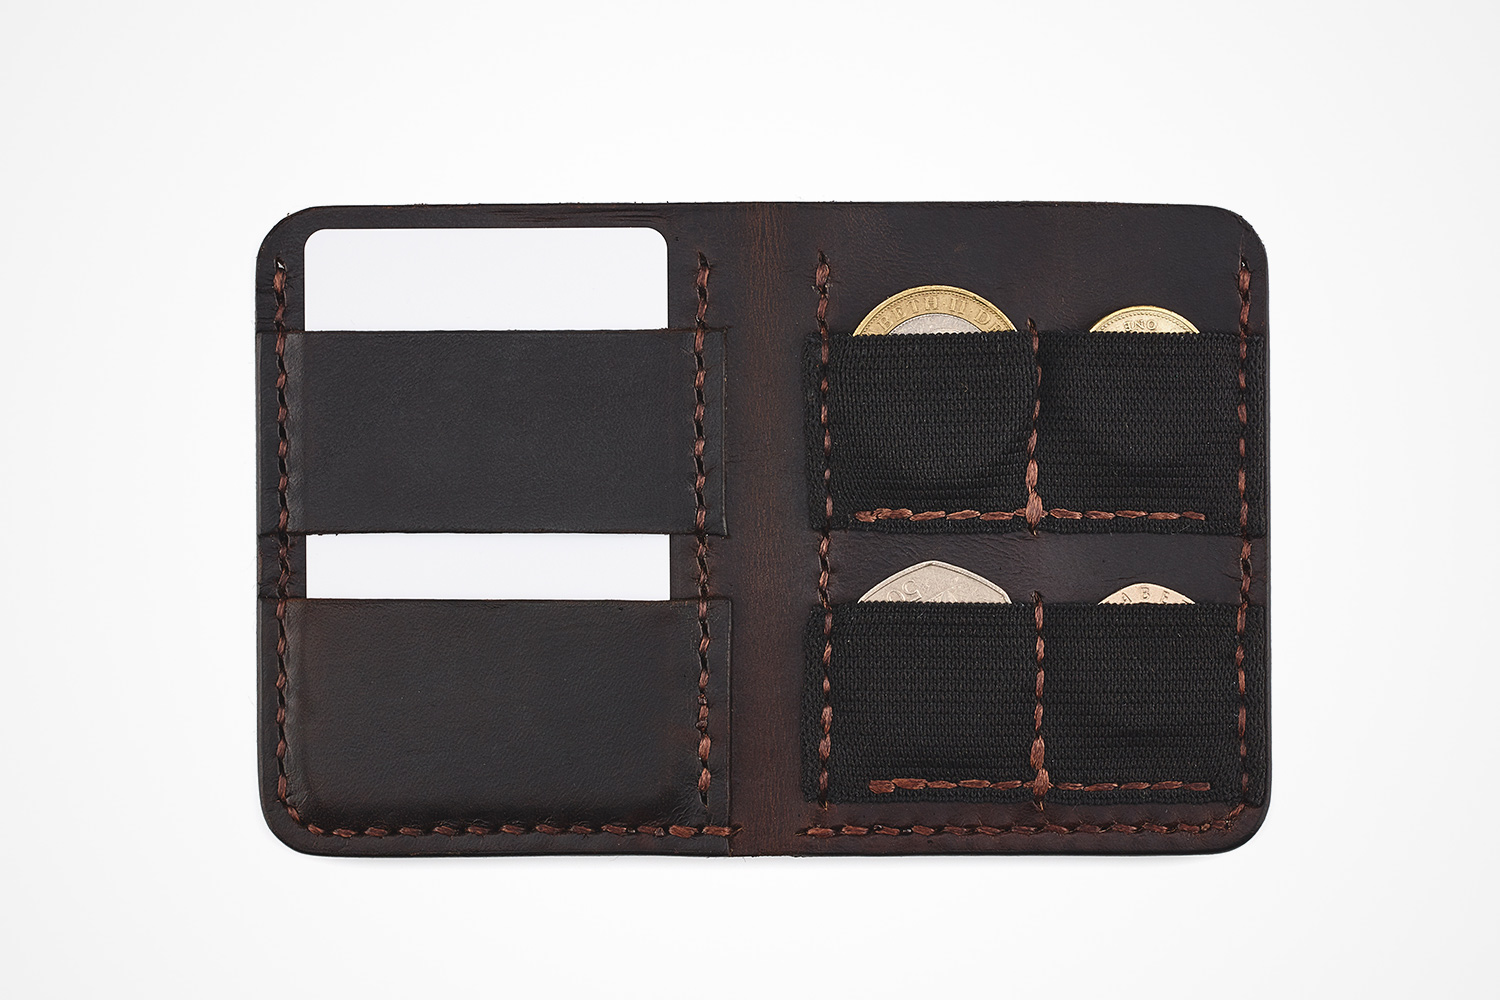 Disc Brand Co.'s Minimalist Coin Wallet | Holds Cash, Cards & Change